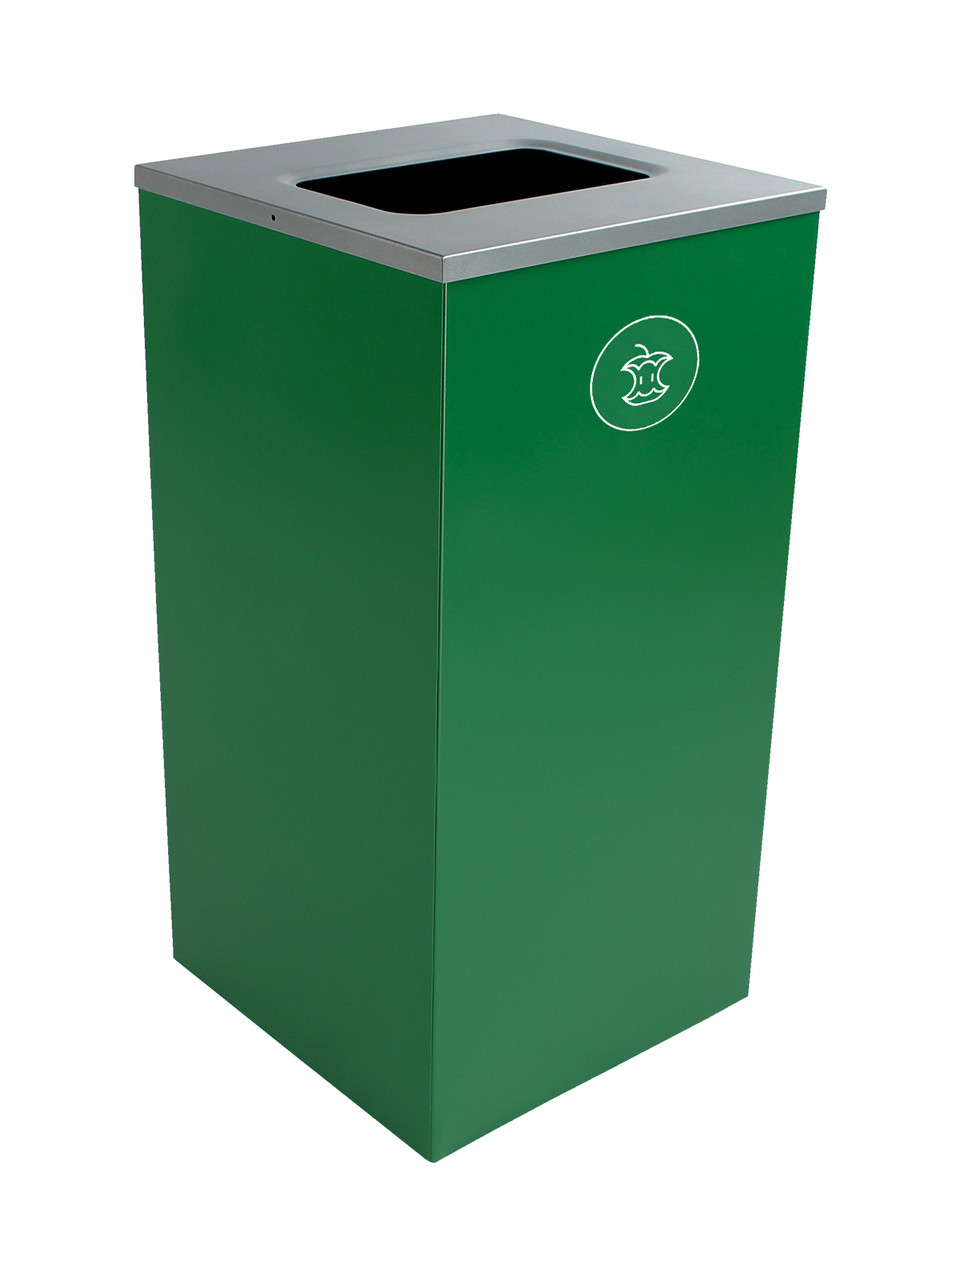 24 Gallon Steel Spectrum Cube Square Compost Bin Dark Green 8107051-4